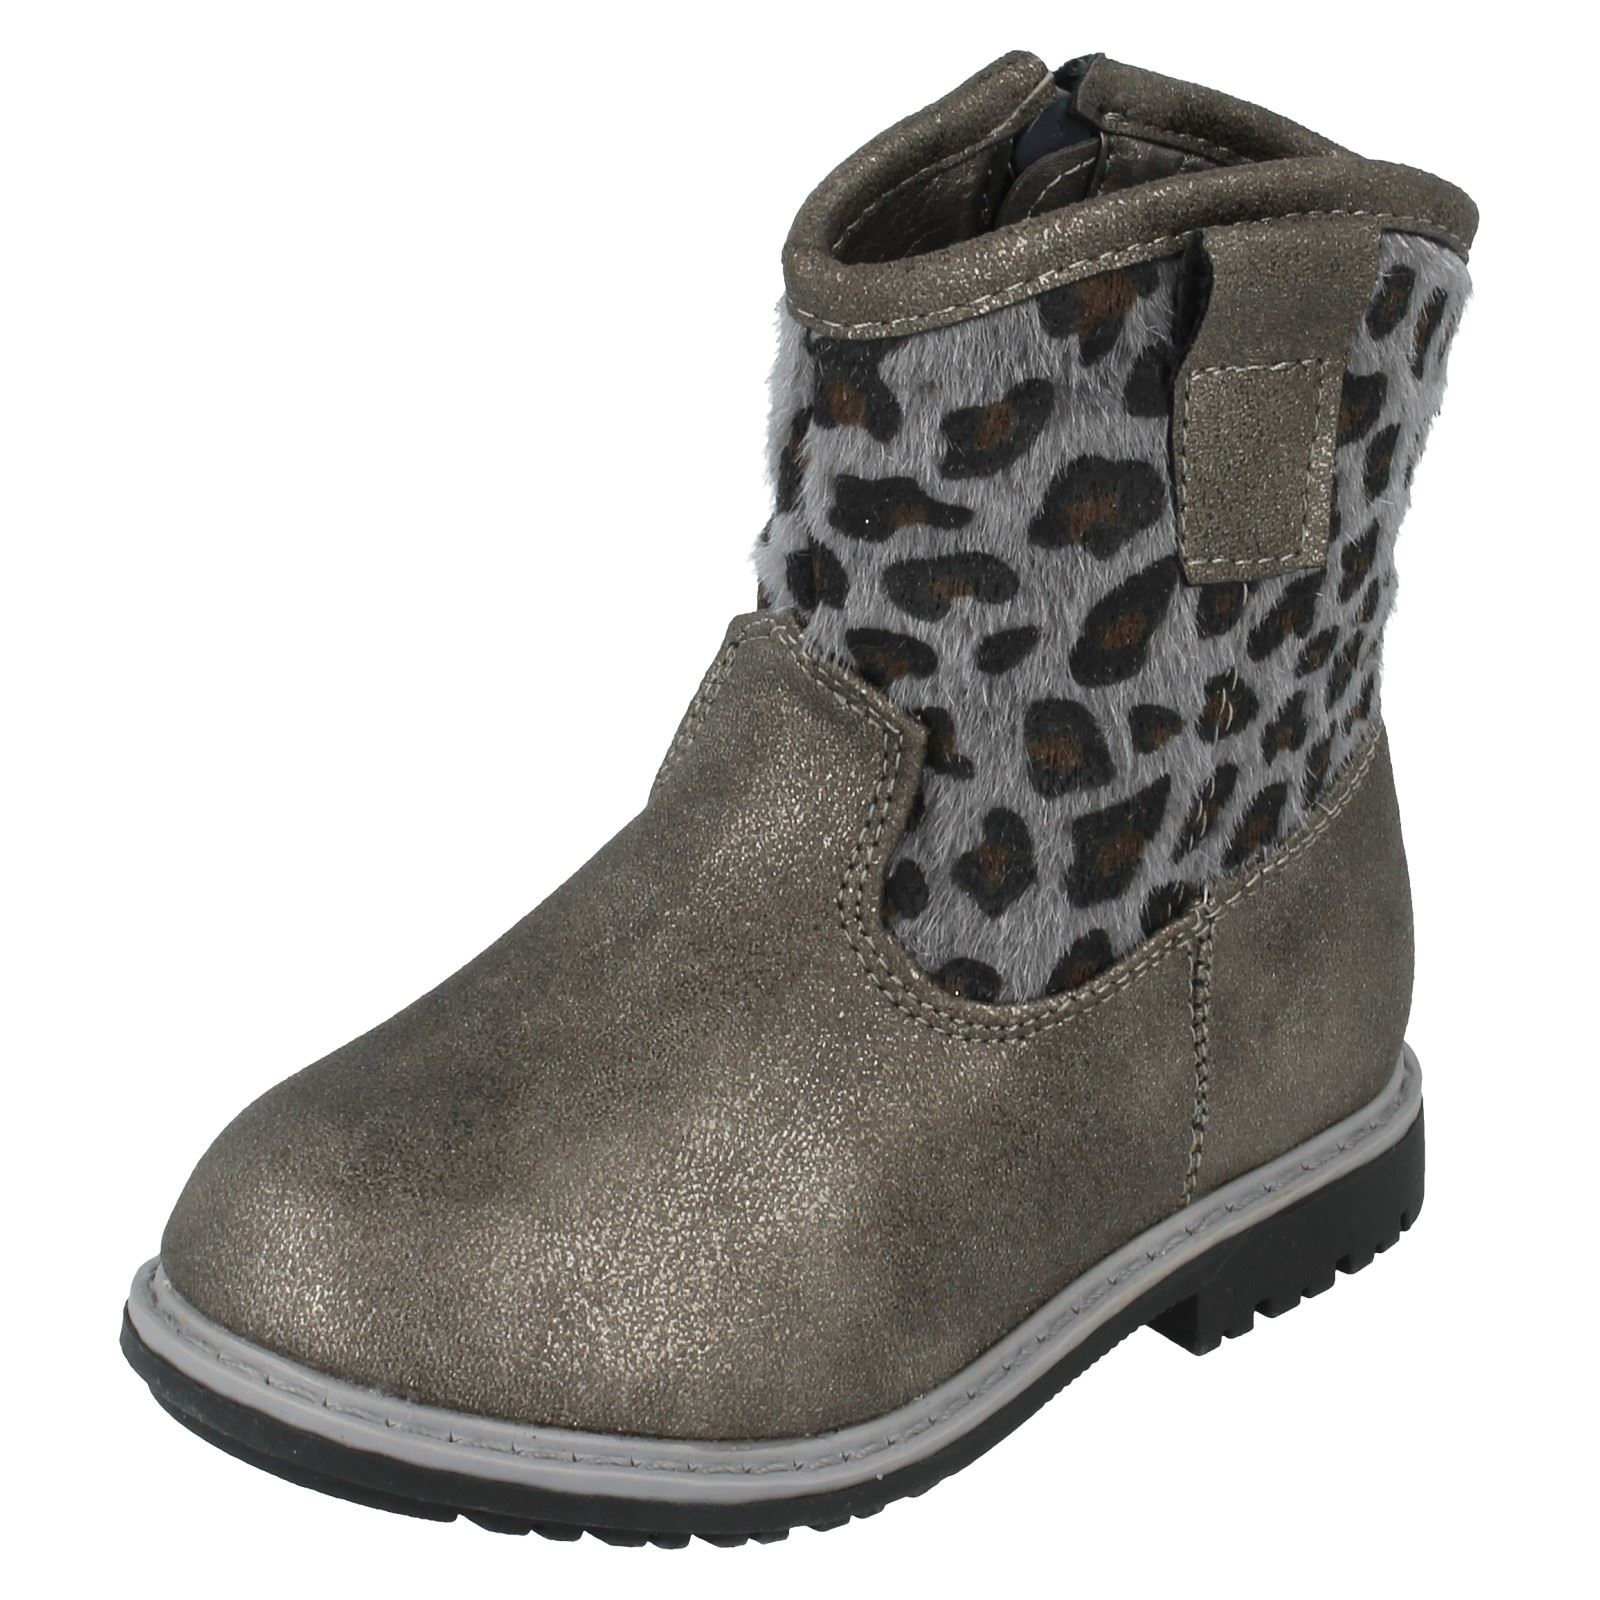 Girls Spot On Boots Infant Style - H4110